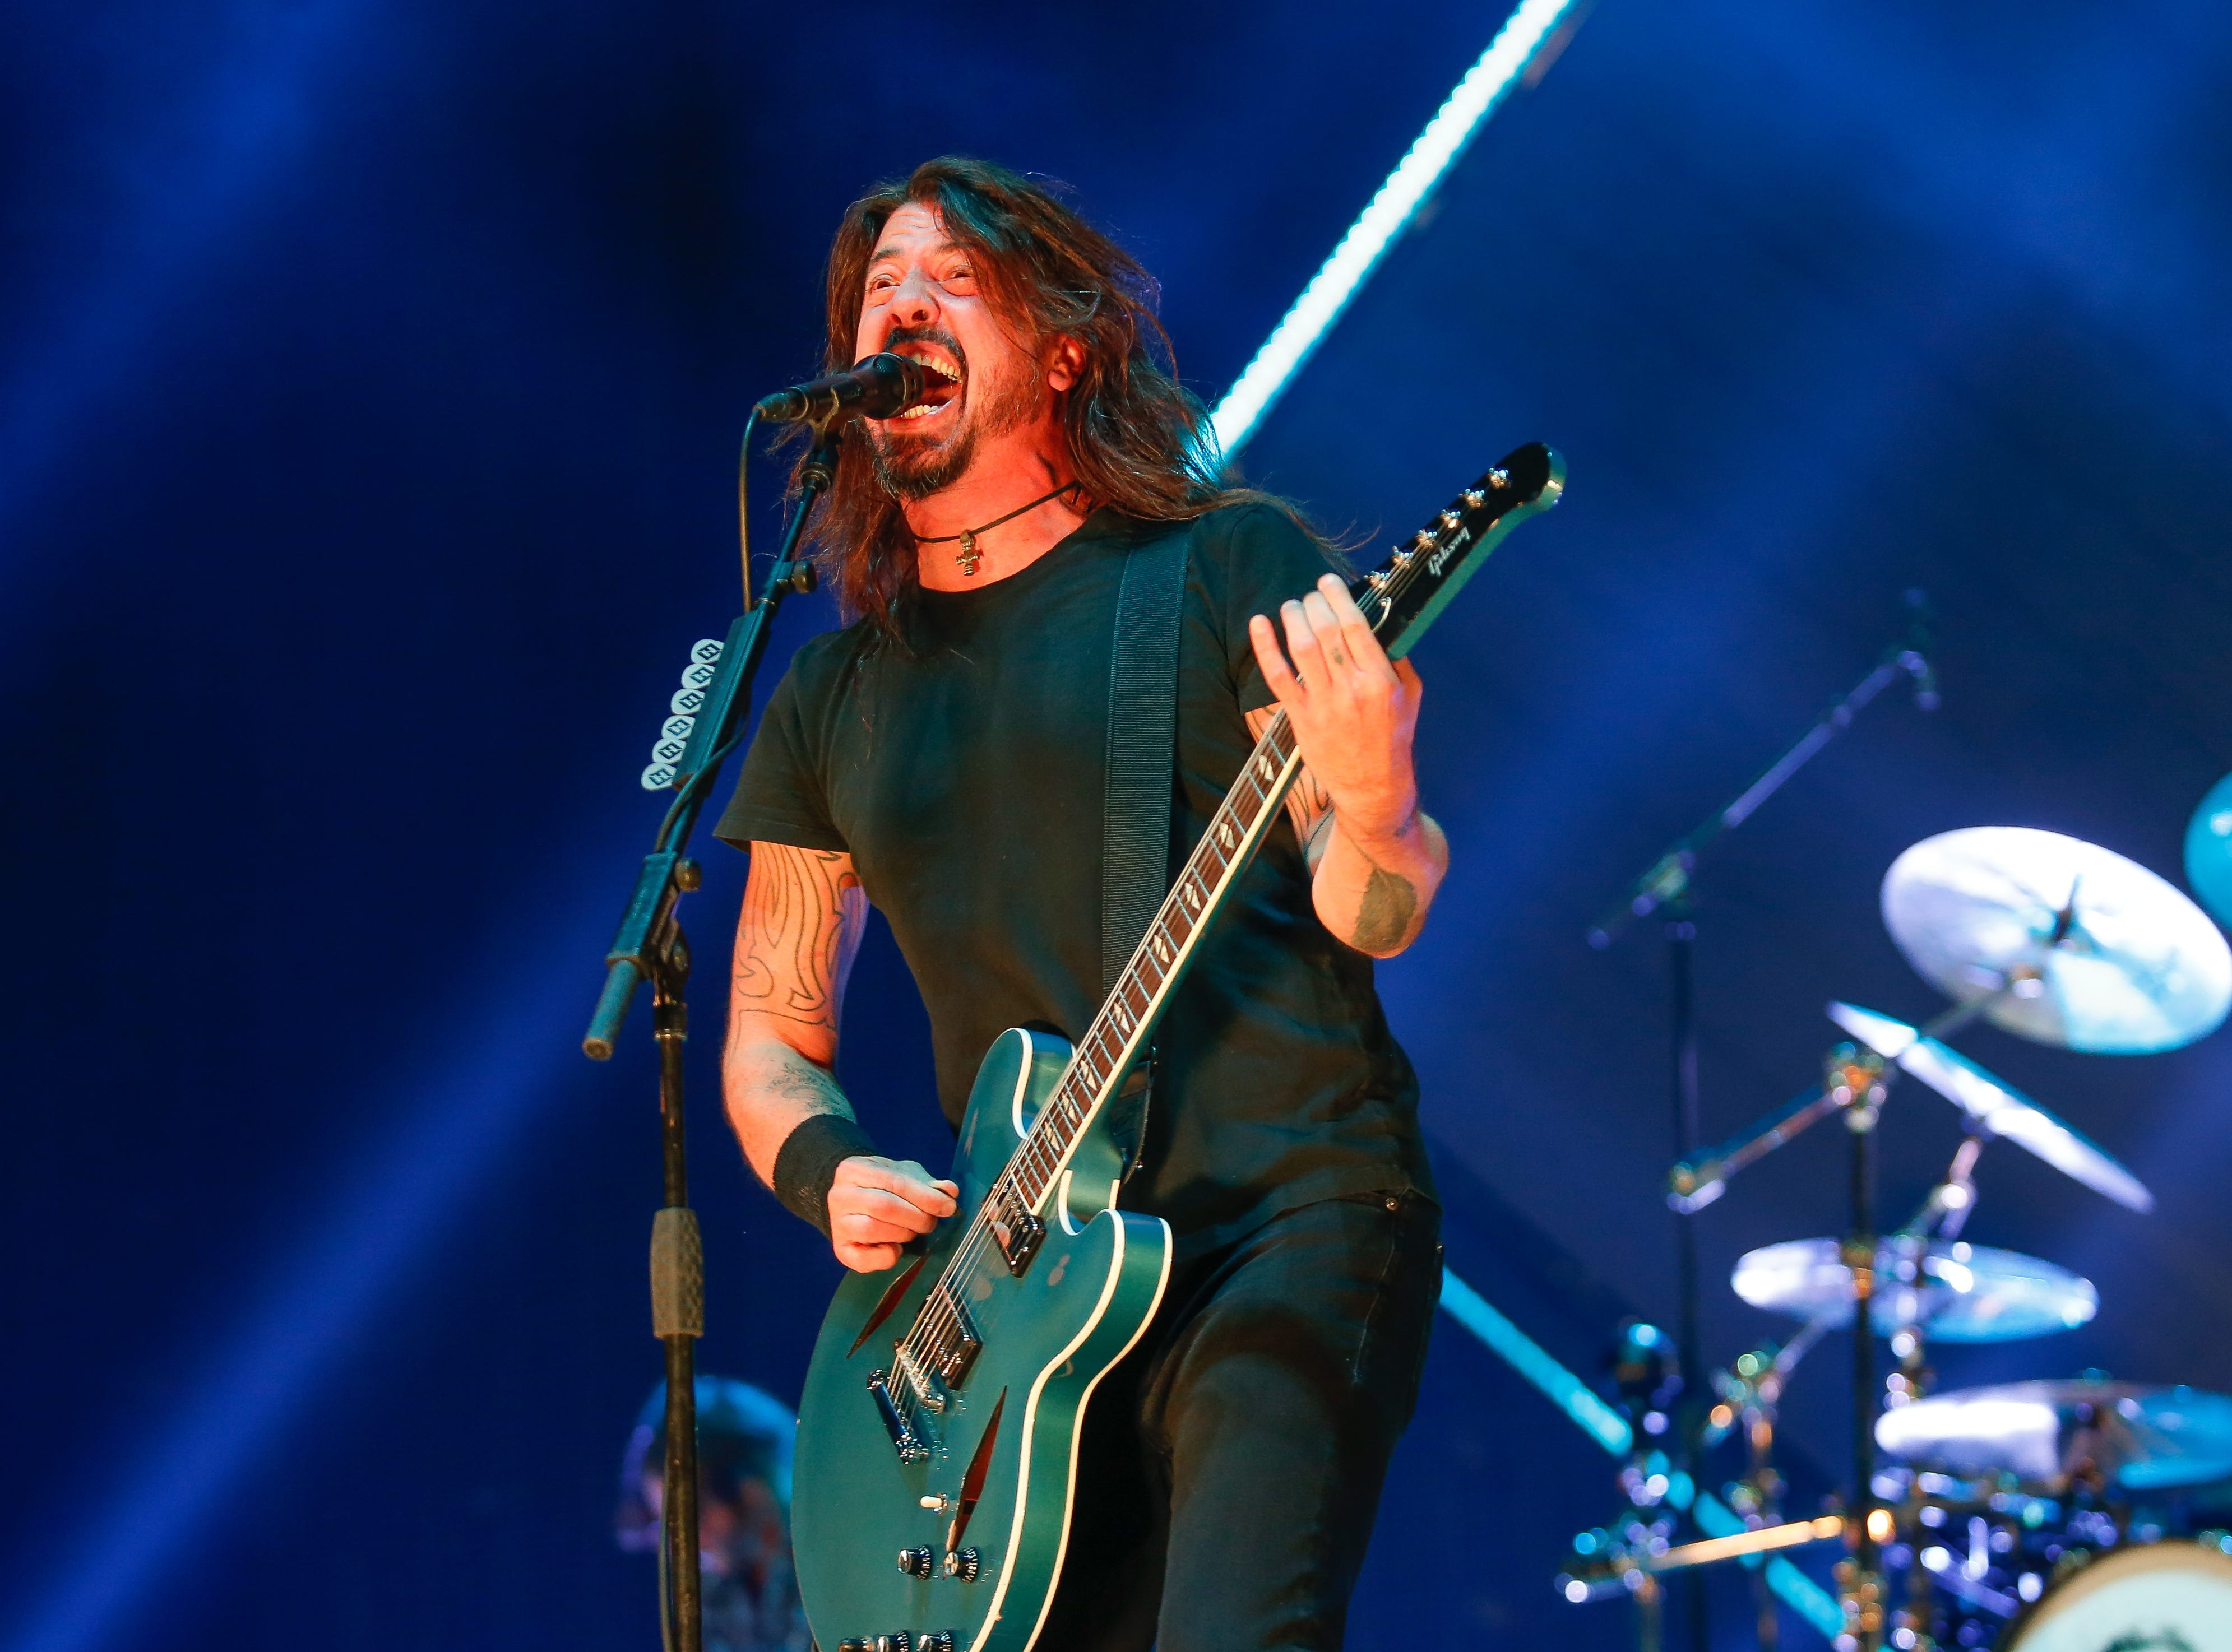 Foo Fighters lead singer and guitarist Dave Grohl sings at Monday's show at Little Caesars Arena.